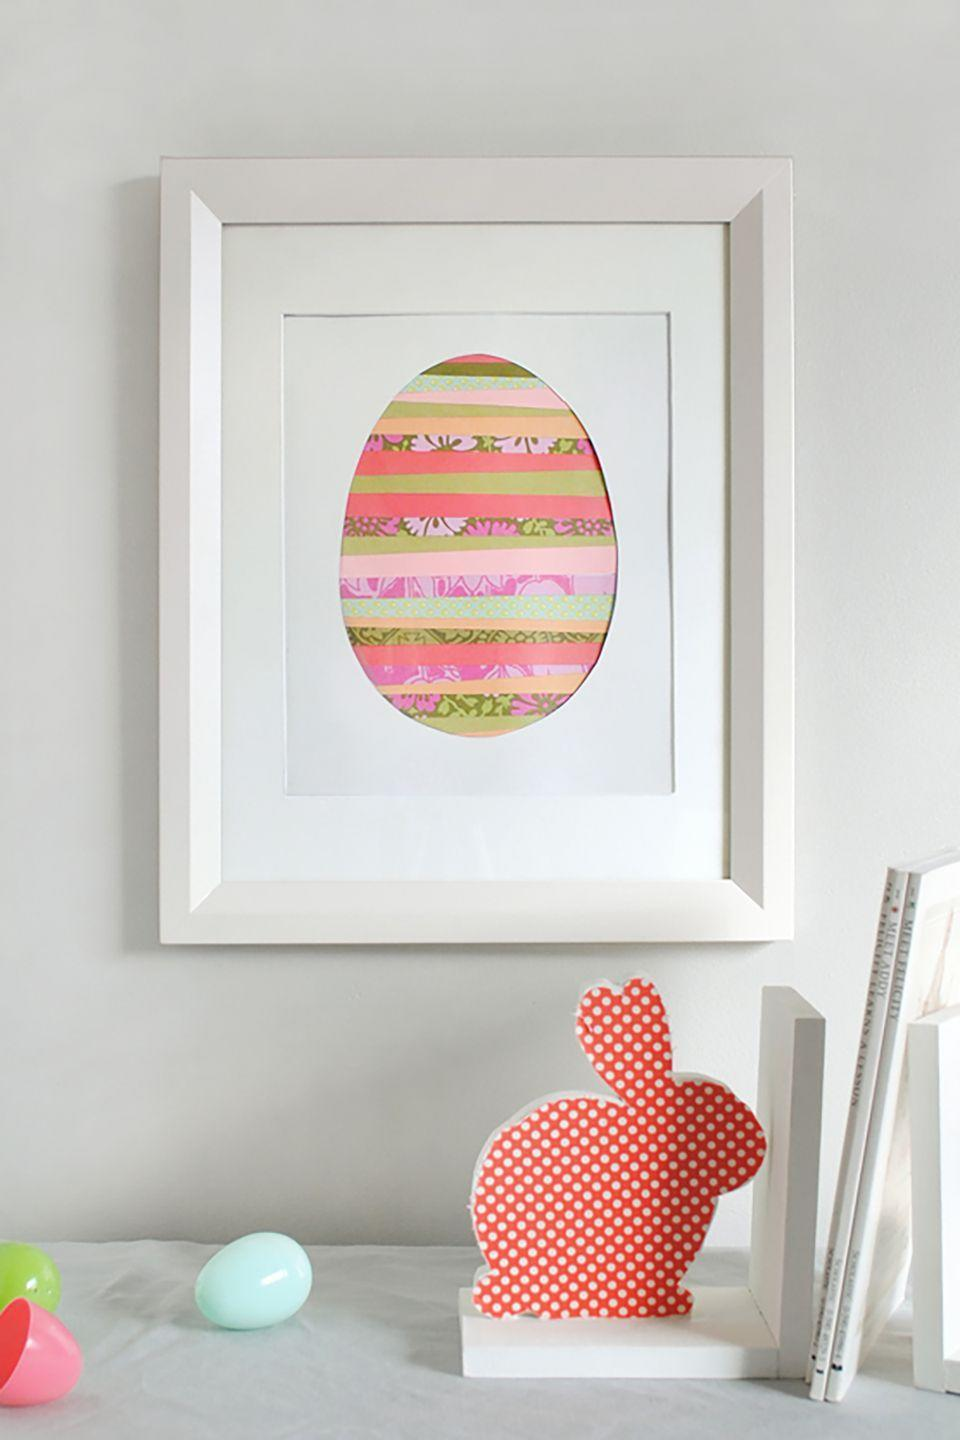 """<p>Let your little one arrange strips of colorful paper to create this beautiful, minimalistic Easter art for your home. </p><p><strong>Get the tutorial, created by <a href=""""http://mermagblog.com"""" rel=""""nofollow noopener"""" target=""""_blank"""" data-ylk=""""slk:Mer Mag"""" class=""""link rapid-noclick-resp"""">Mer Mag</a>, at <a href=""""http://www.minted.com/julep/2013/02/26/paper-strip-easter-egg-art/"""" rel=""""nofollow noopener"""" target=""""_blank"""" data-ylk=""""slk:Minted"""" class=""""link rapid-noclick-resp"""">Minted</a>. </strong></p>"""